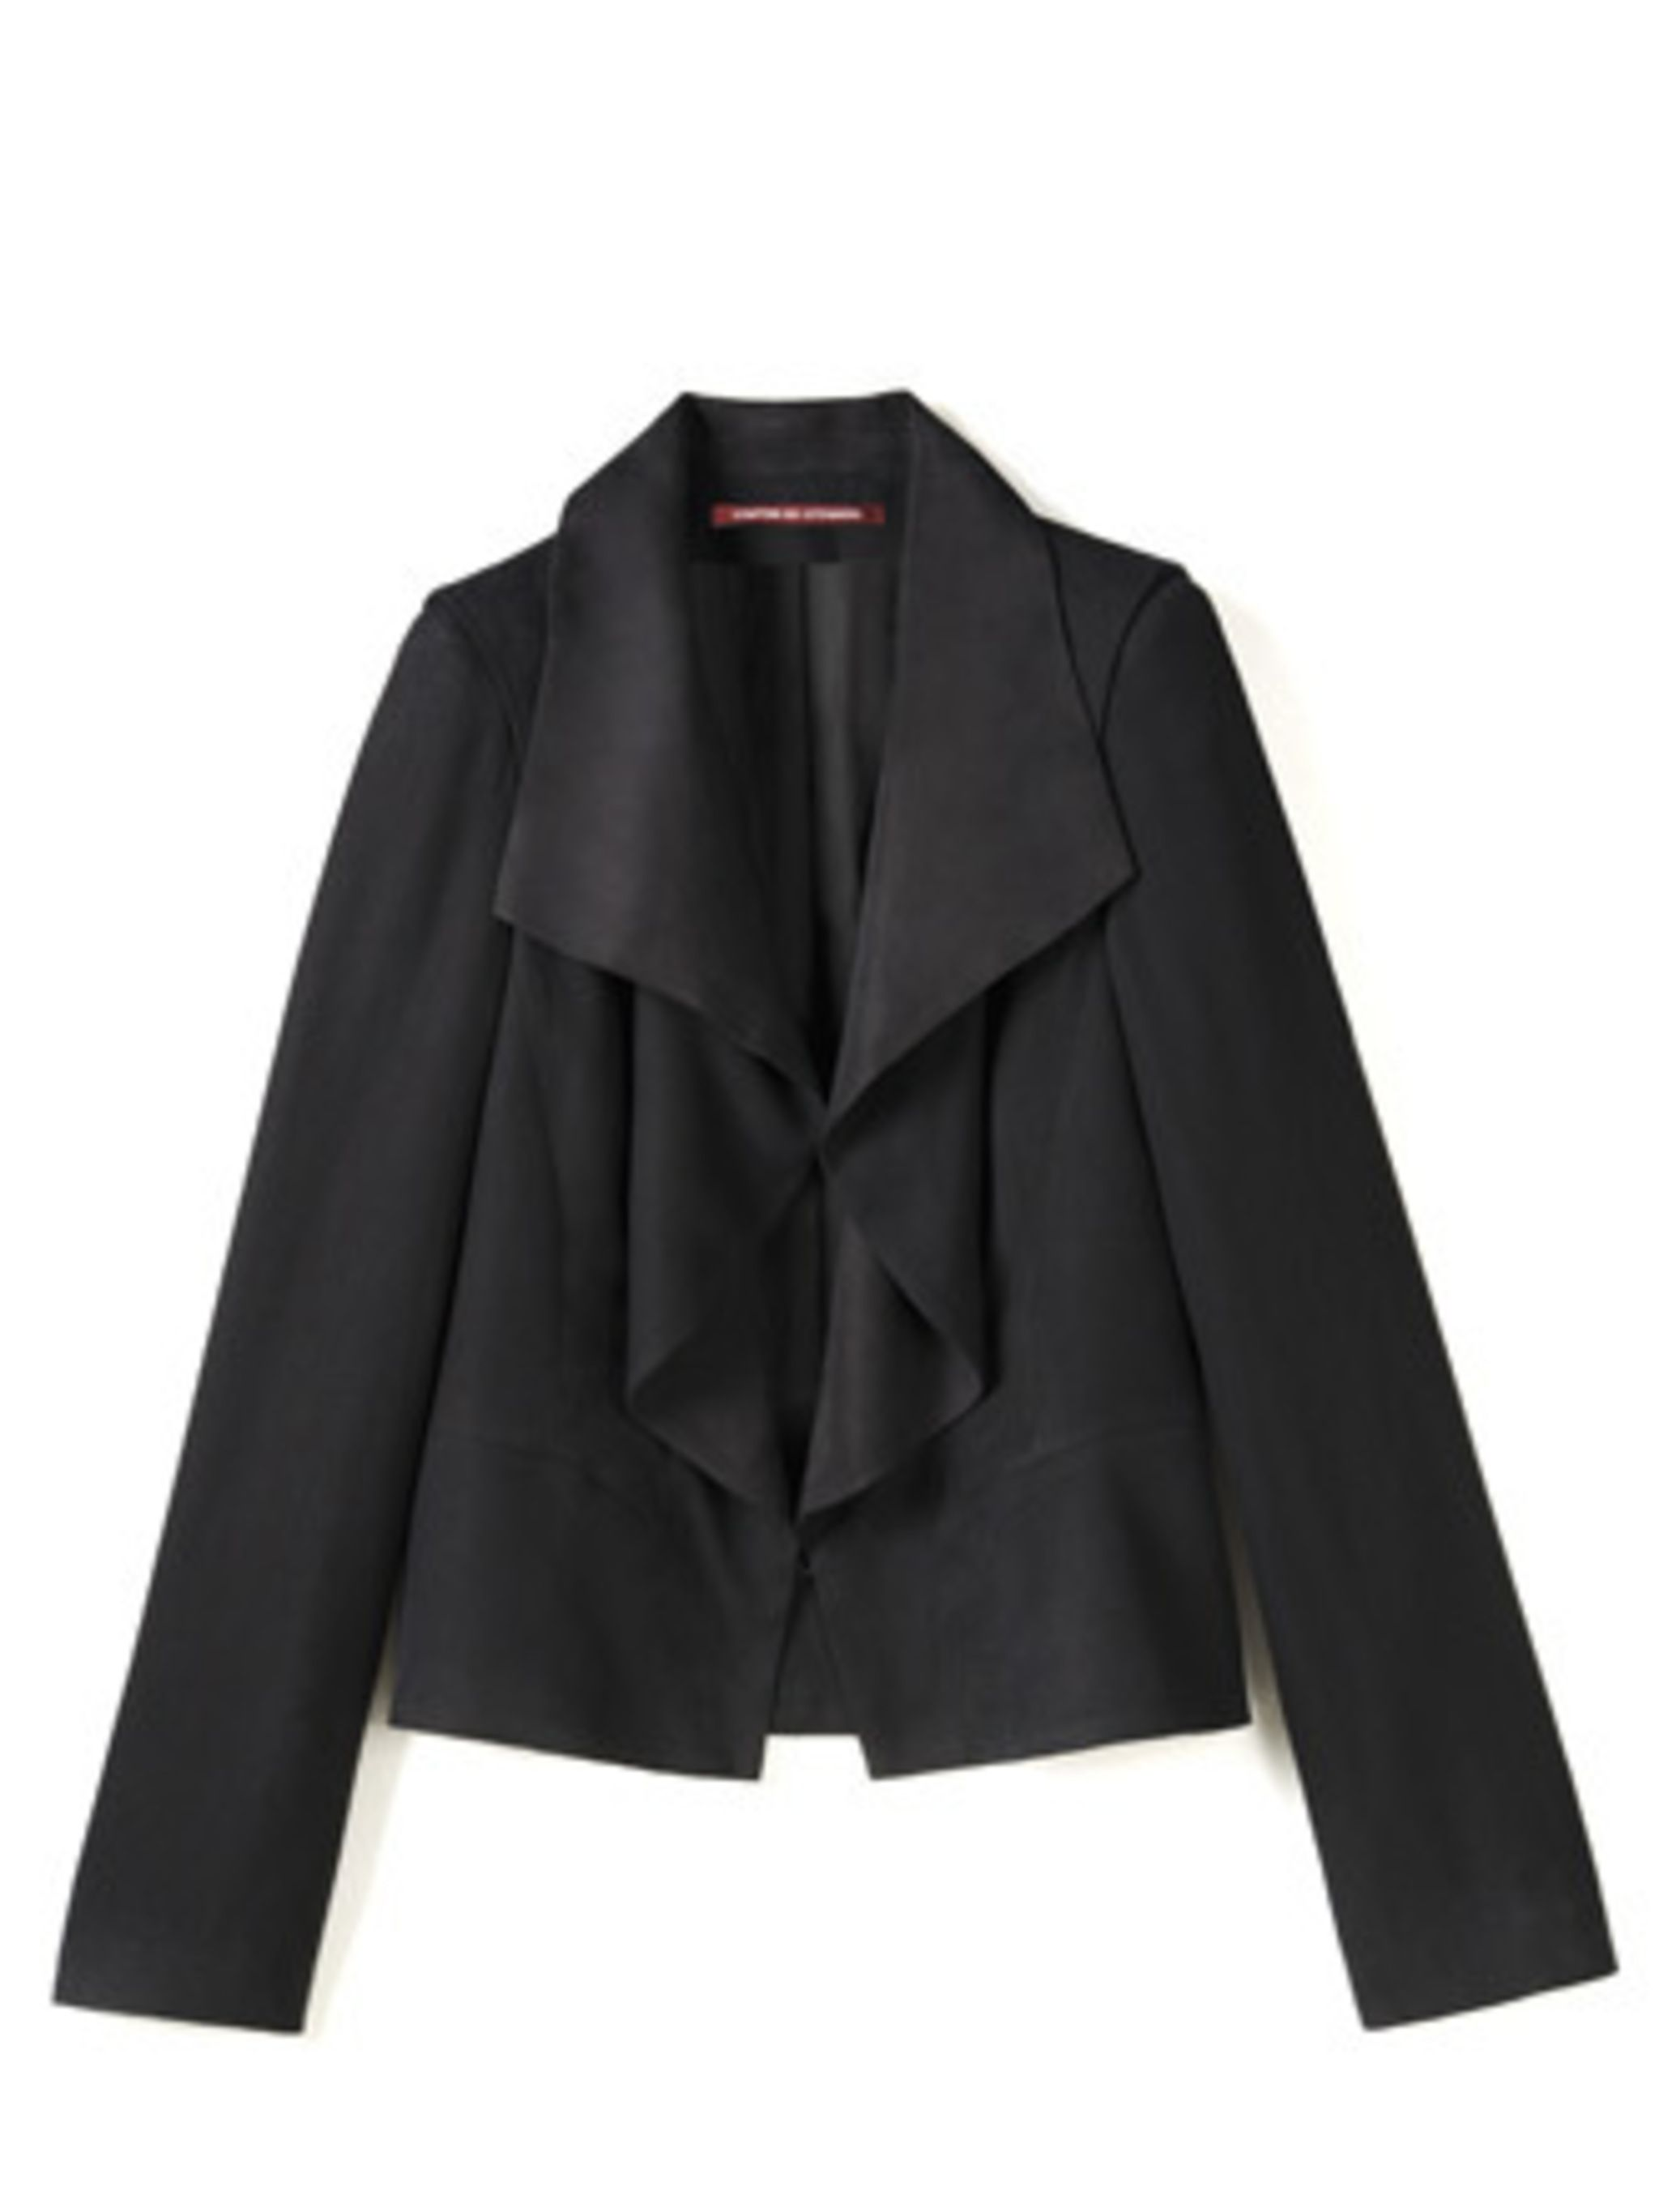 <p>Everyone should own a black blazer. This ruffle version from Comptoir is more feminine than the boyfriend blazers that have ruled for the past few seasons. </p><p>Jacket, £184 by Comptior des Contonniers. For stockists call 0207 792 9580</p>